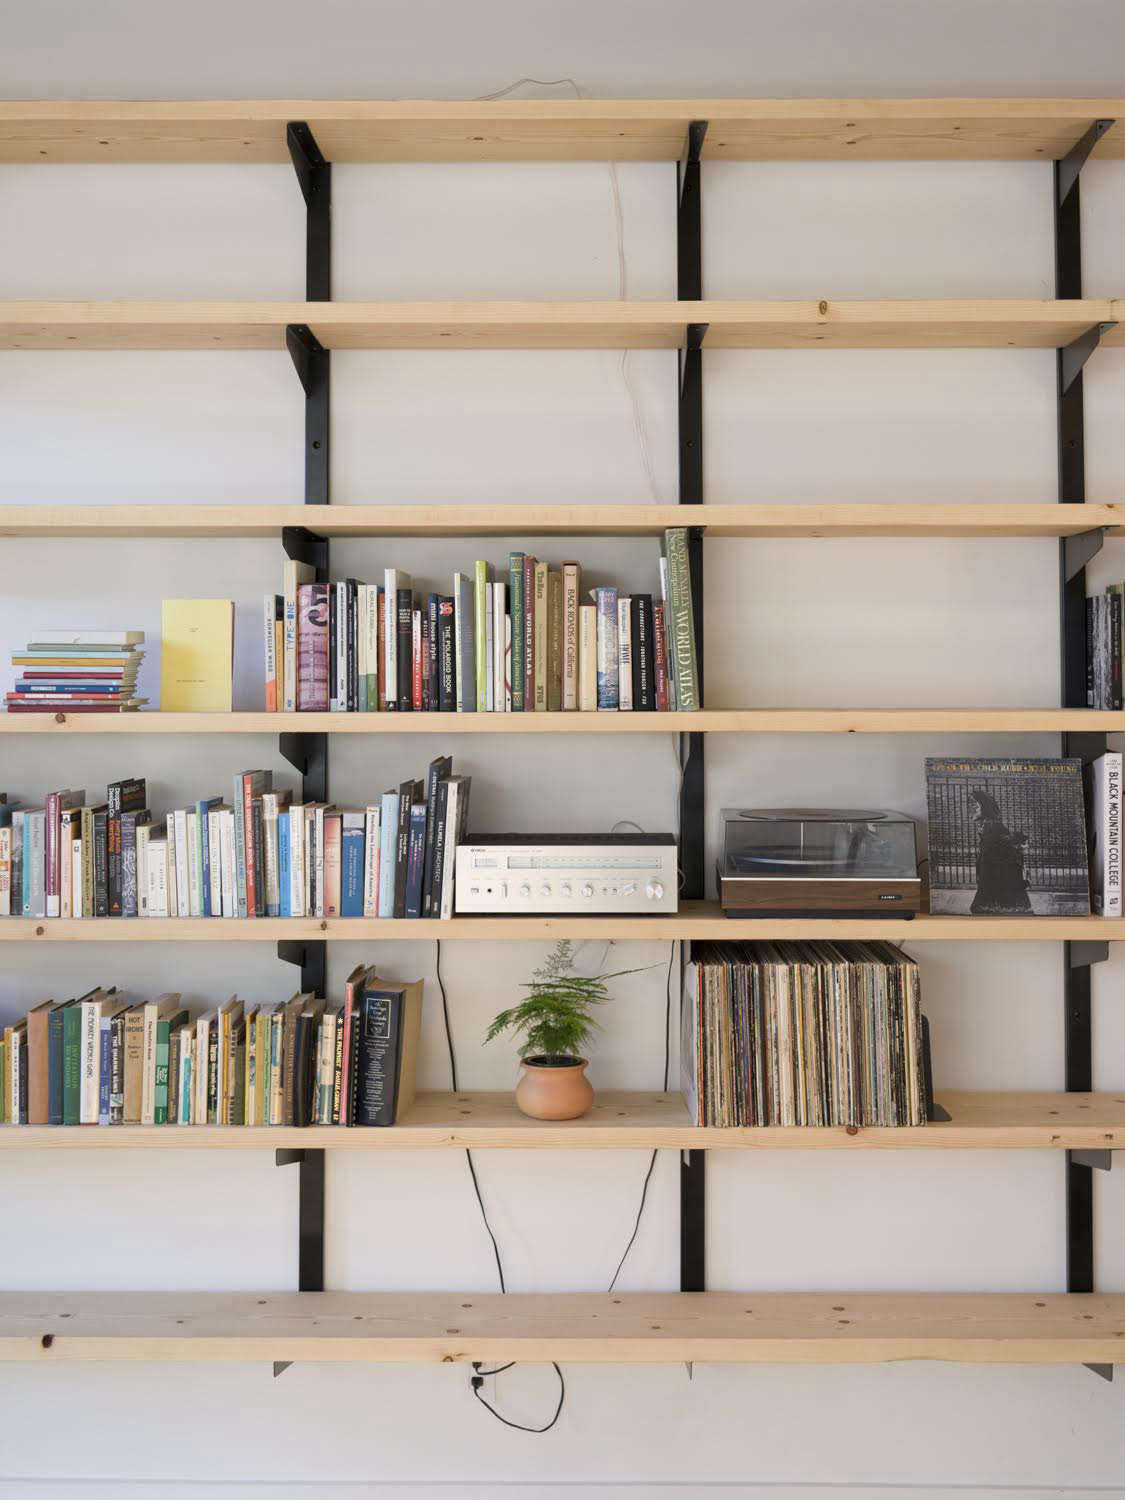 Asharinglibrary of books and records sits on shelves of locally milled fir with brackets by Phloem Studio.